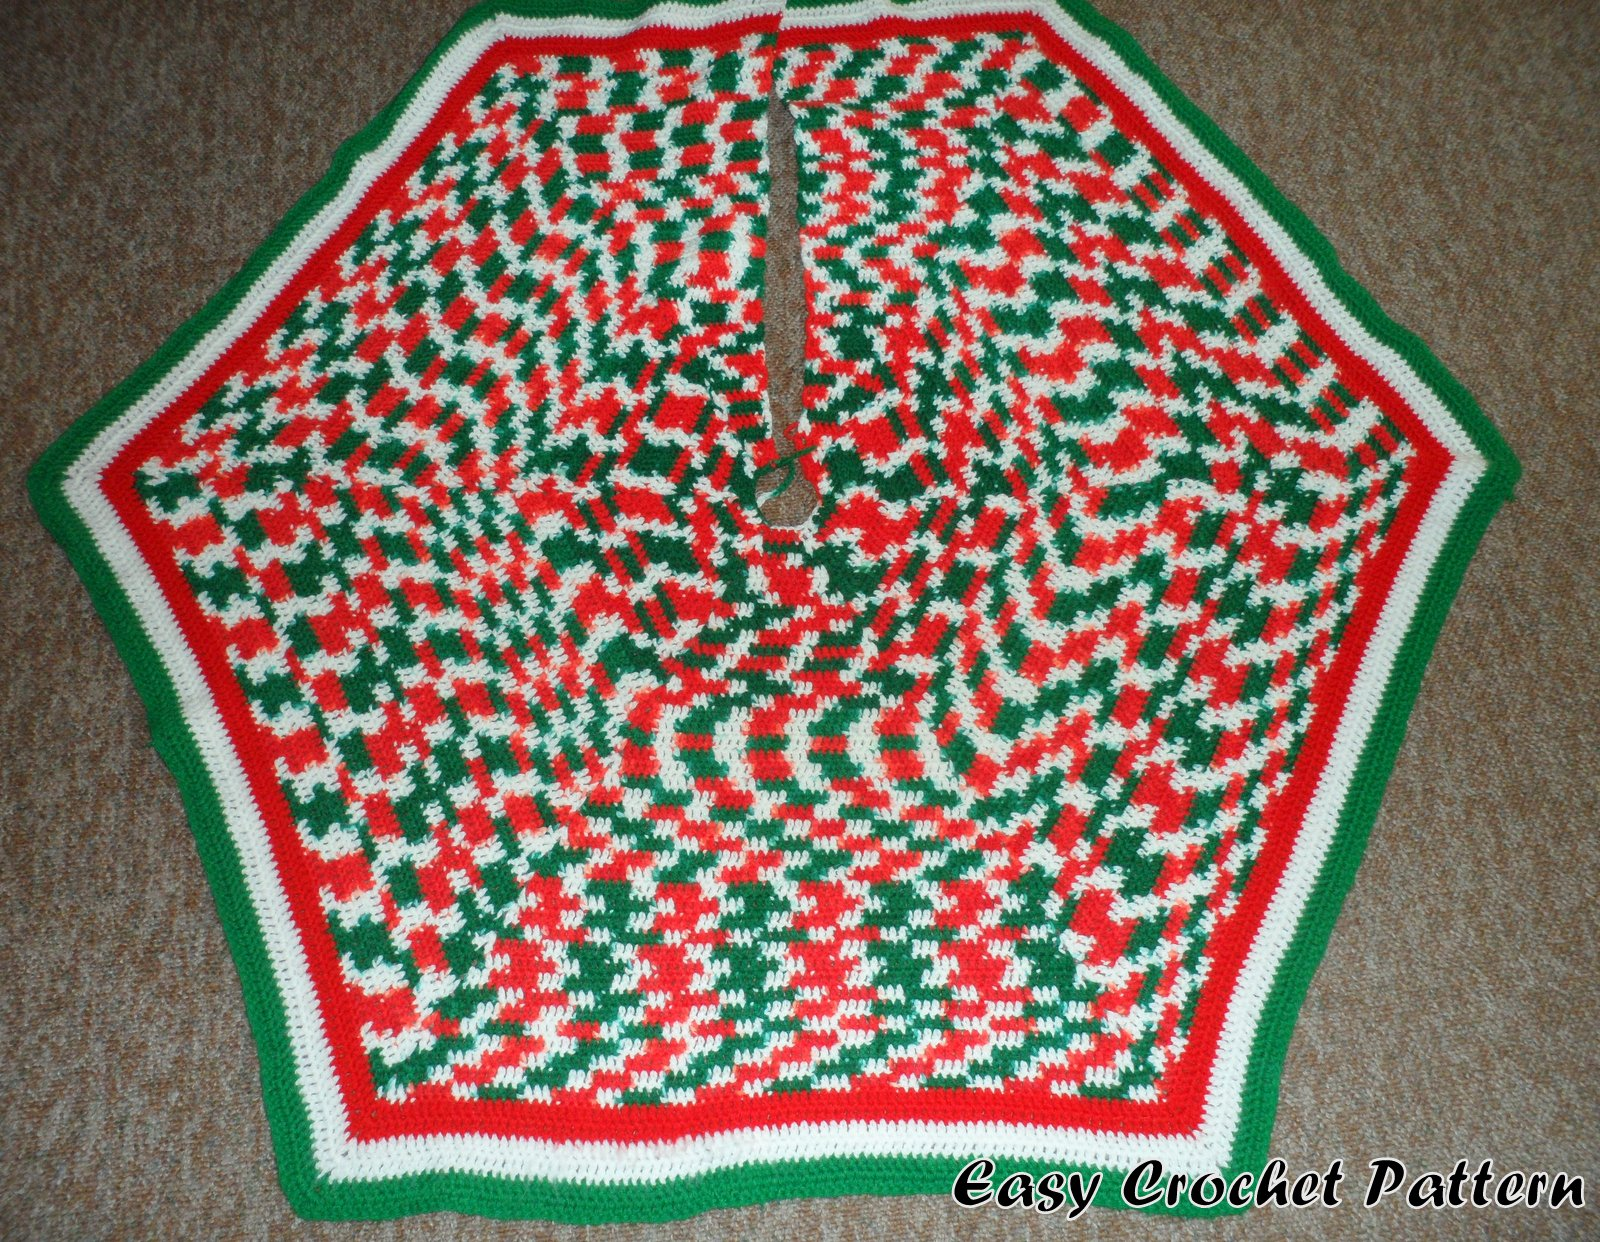 Easy Crochet Pattern: Easy Crocheted Hexagon Christmas ...